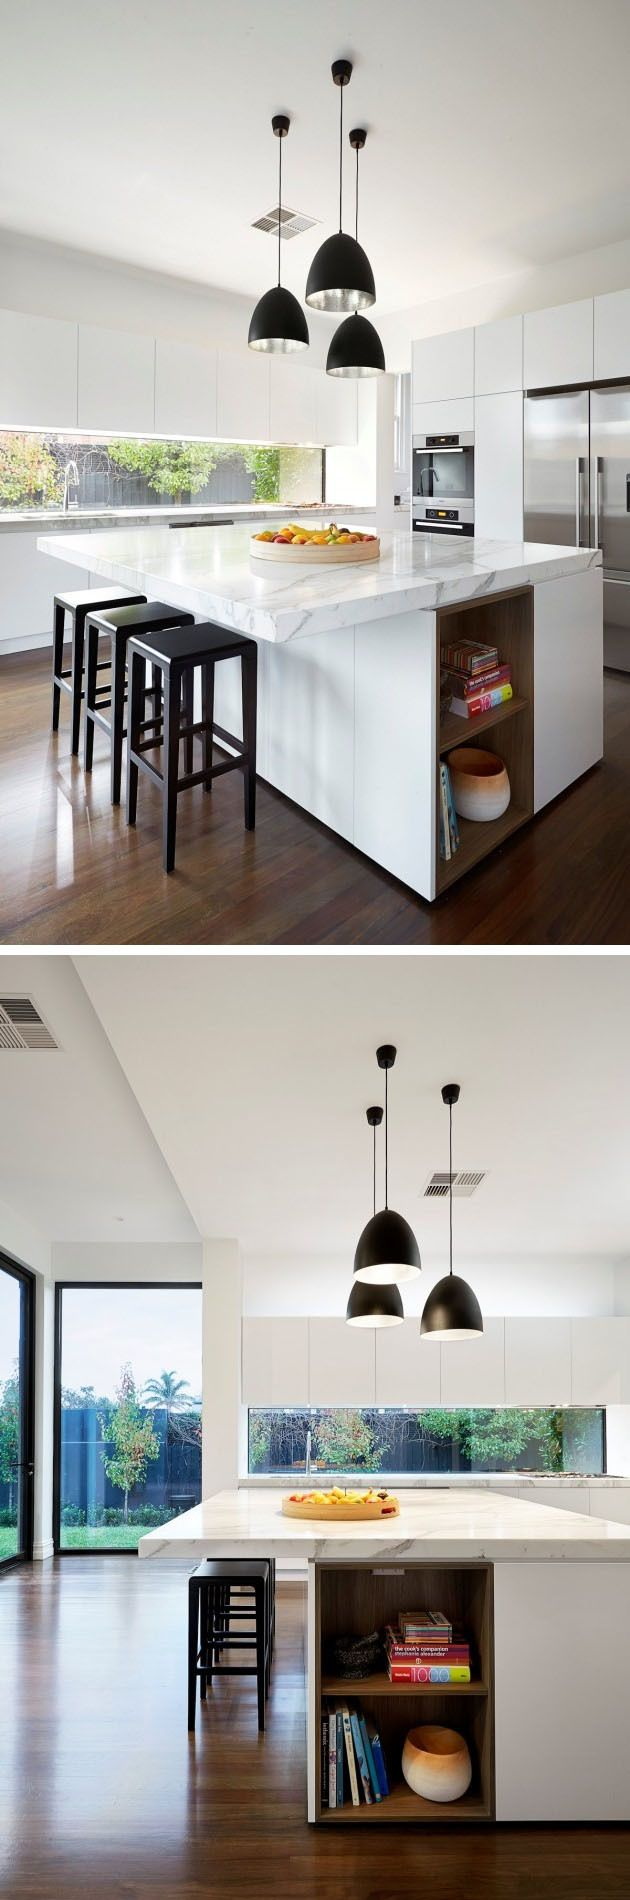 25 best stainless steel island ideas on pinterest stainless 25 best stainless steel island ideas on pinterest stainless steel benches stainless steel countertops and contemporary stainless steel kitchens